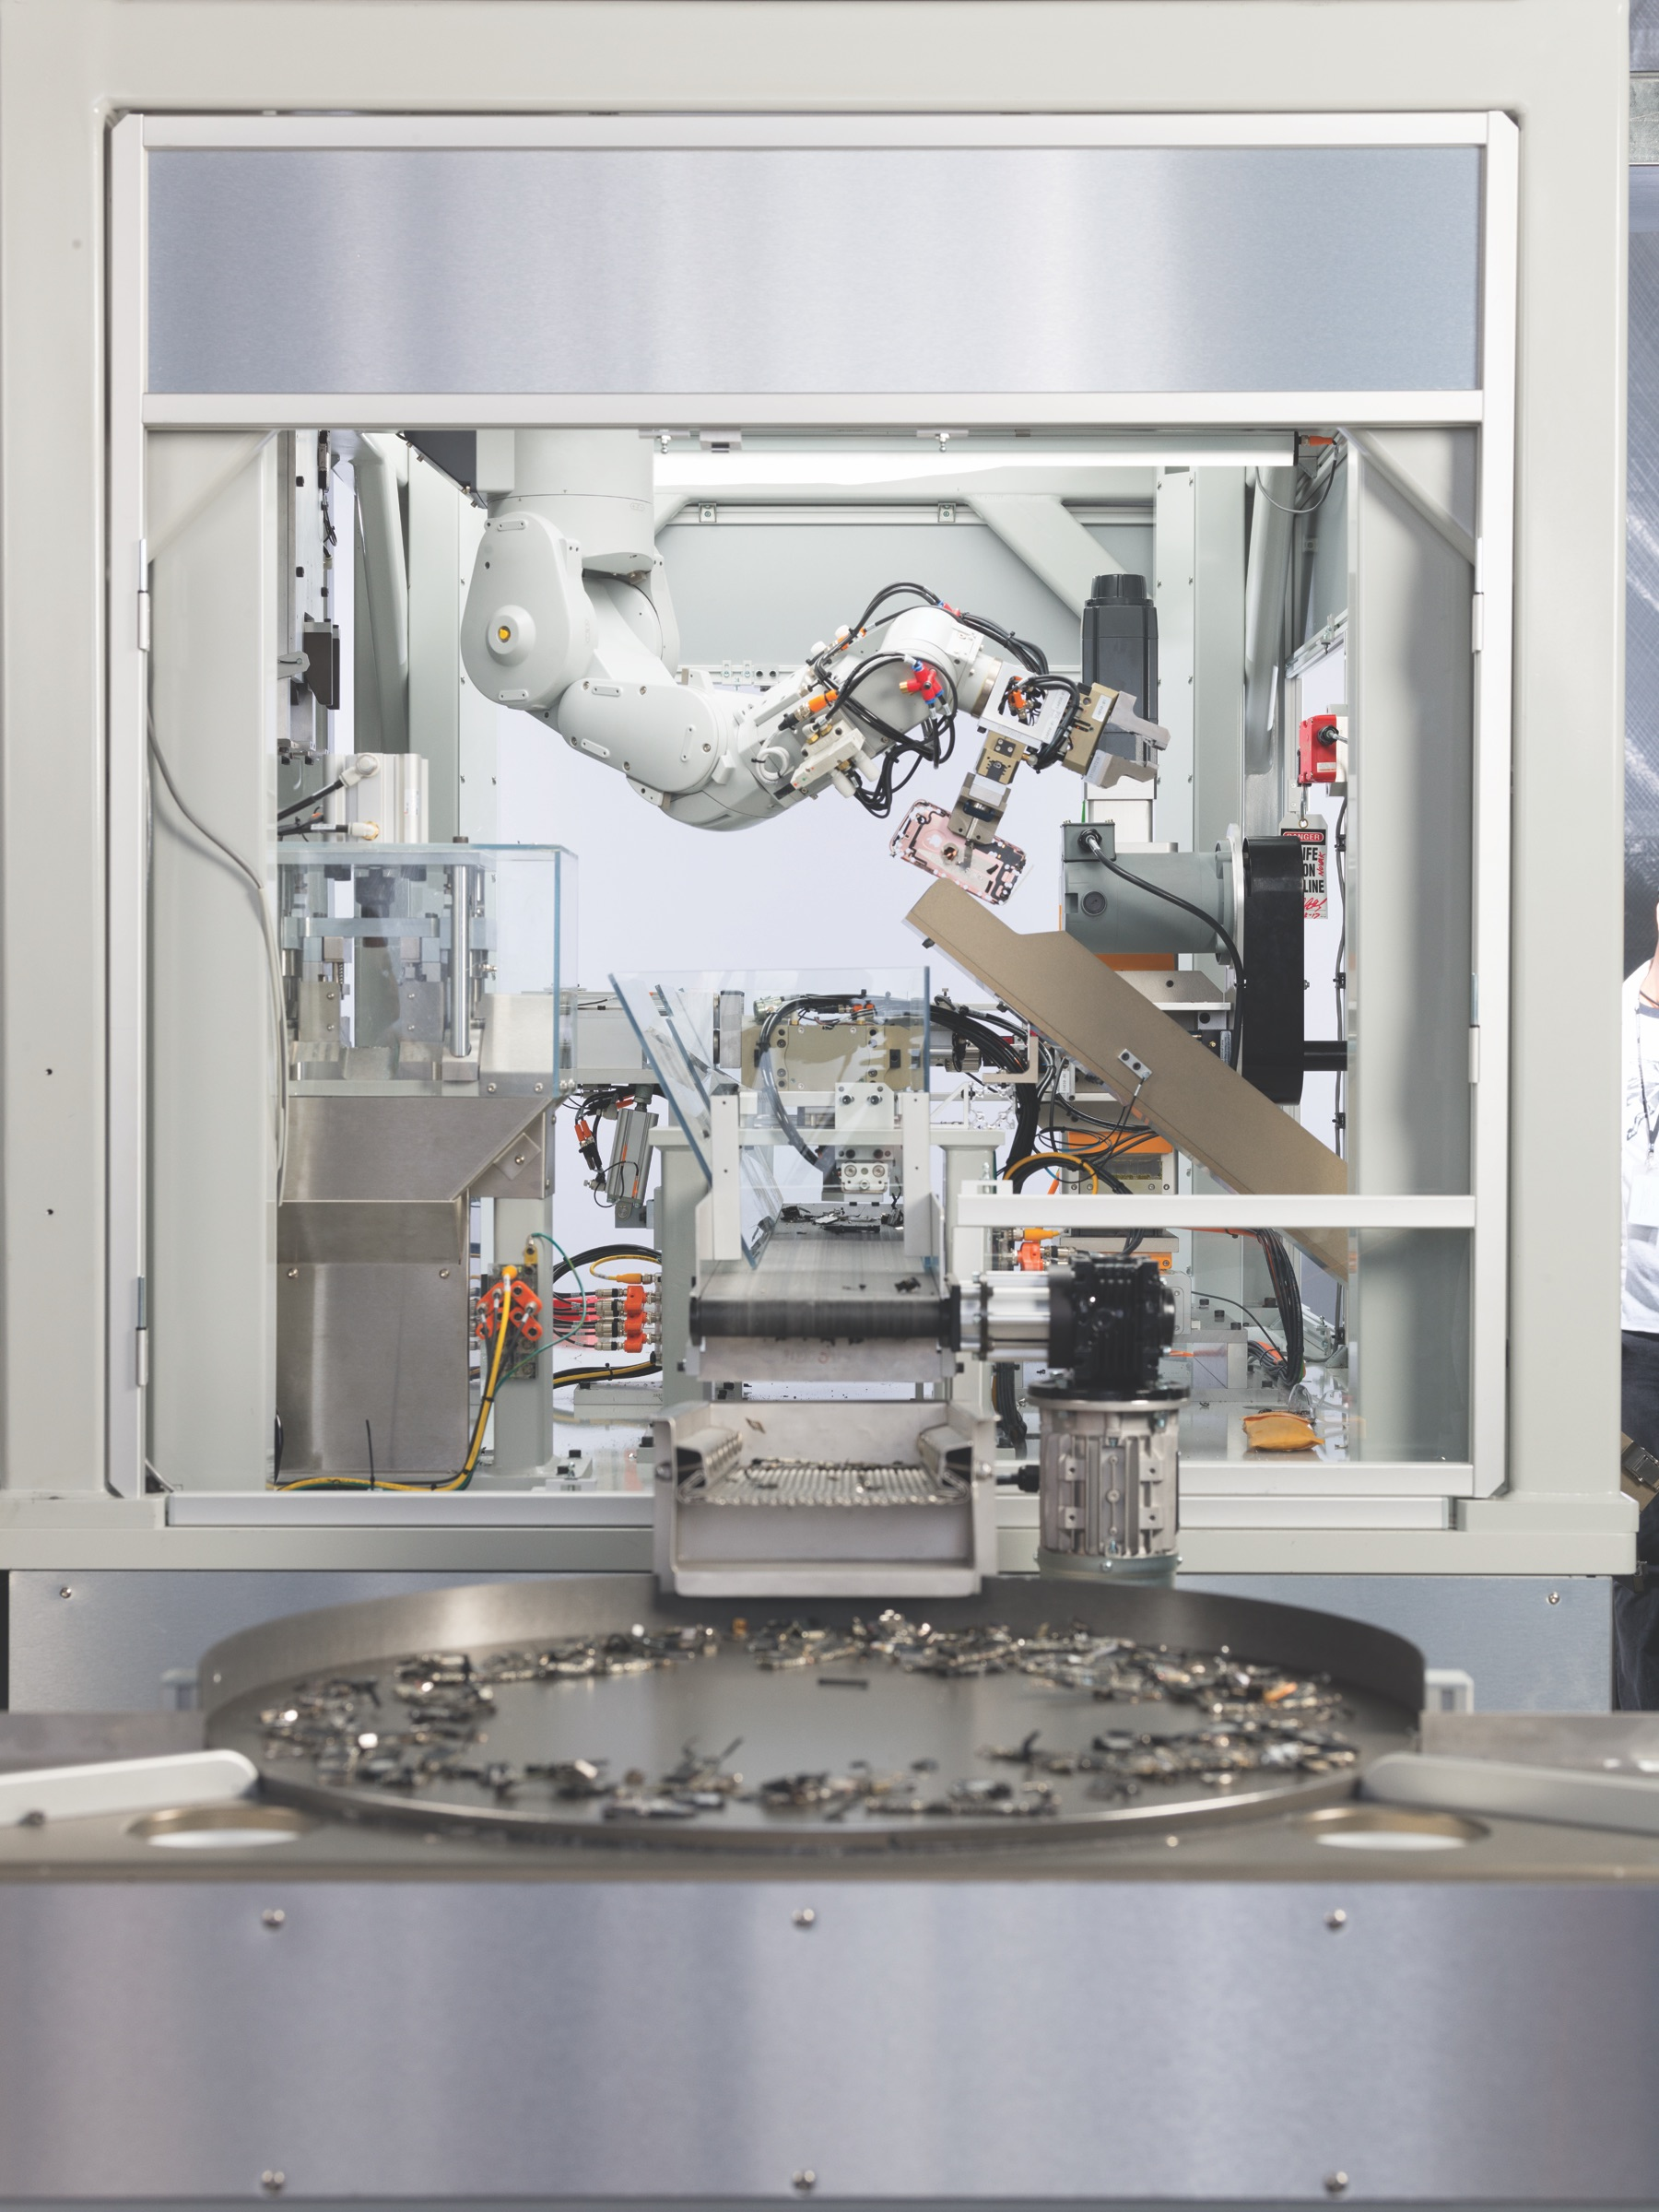 Apple Unveils New Iphone Disassembly Robot Daisy Donating To See A Workout 180327 Sl Sortingtabledrop 001347tif Print